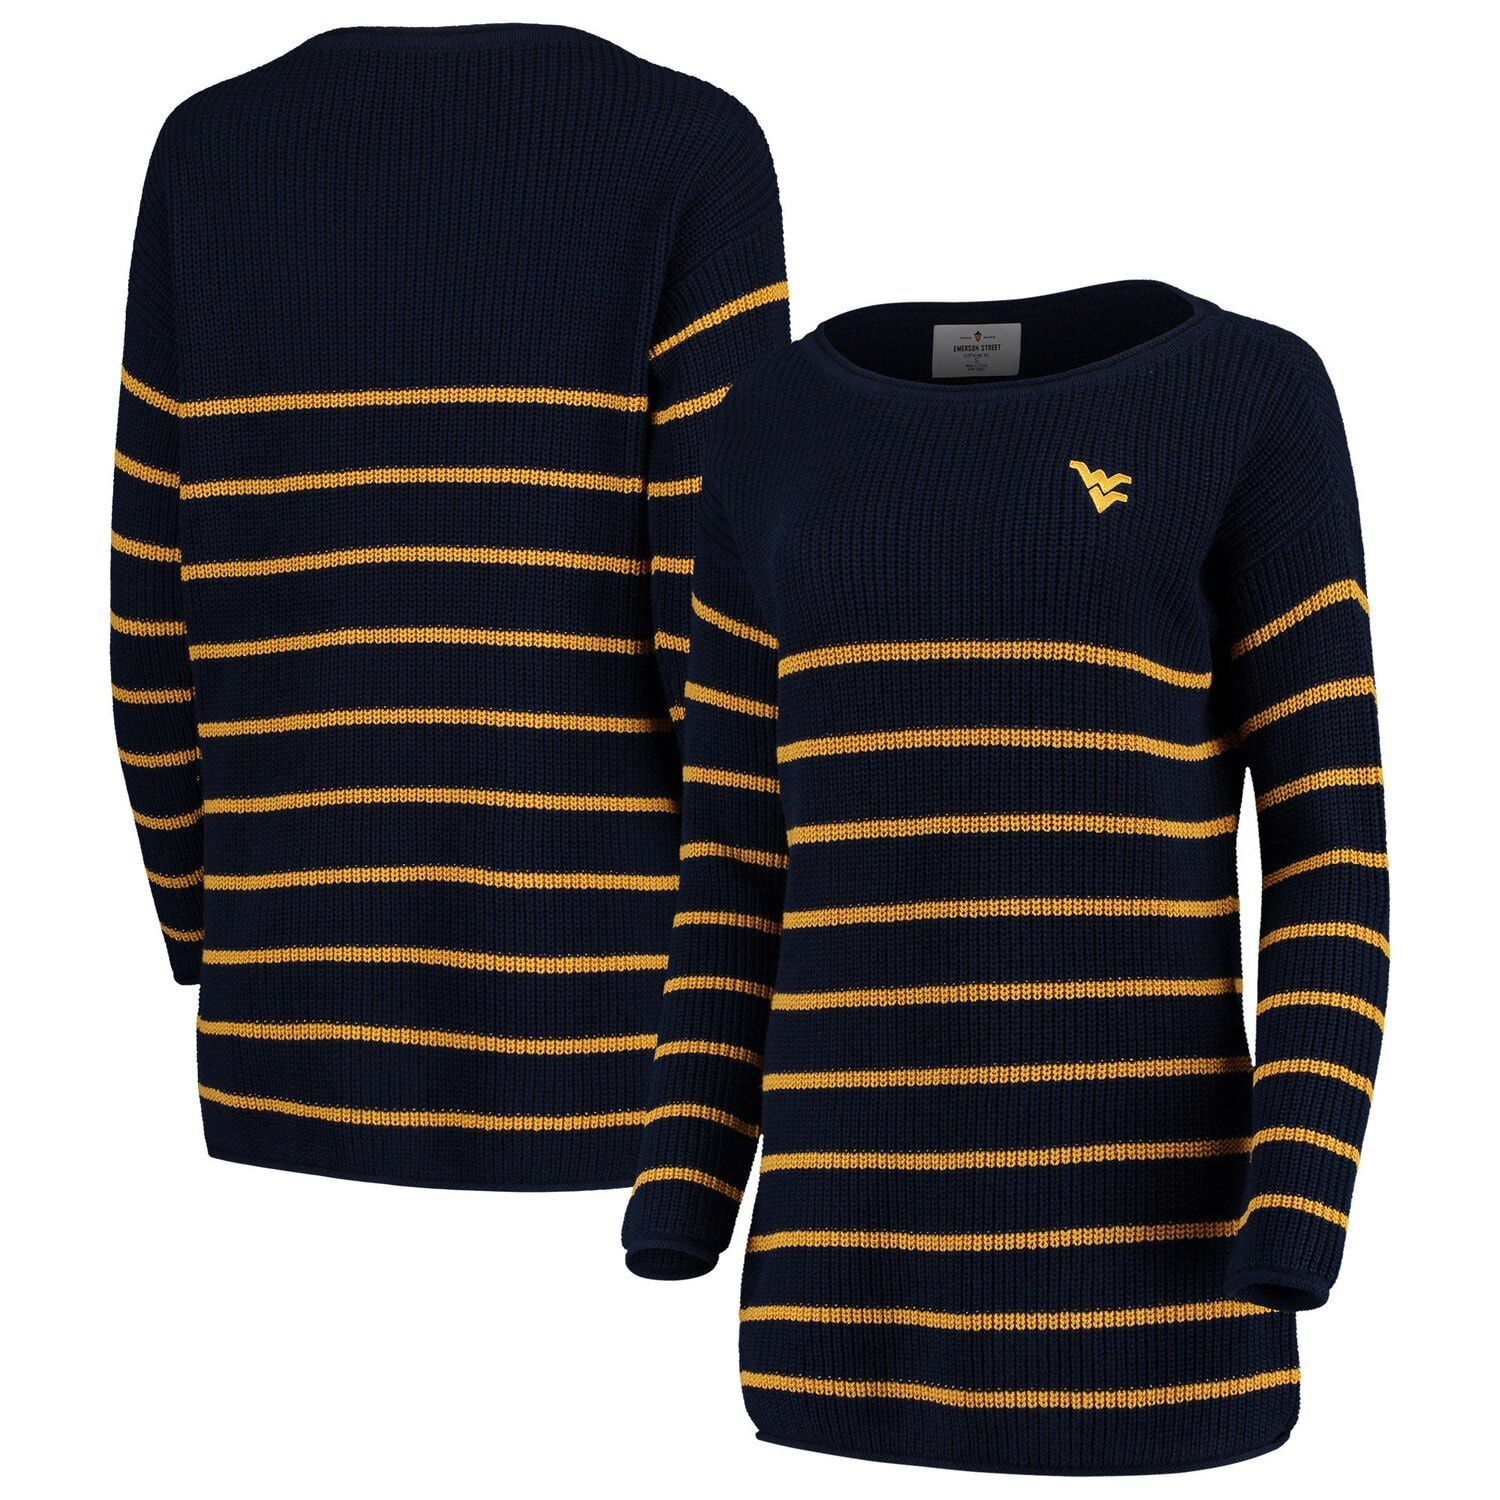 Women's Navy West Virginia Mountaineers Missy Juliette Striped Knit Sweater #westvirginia